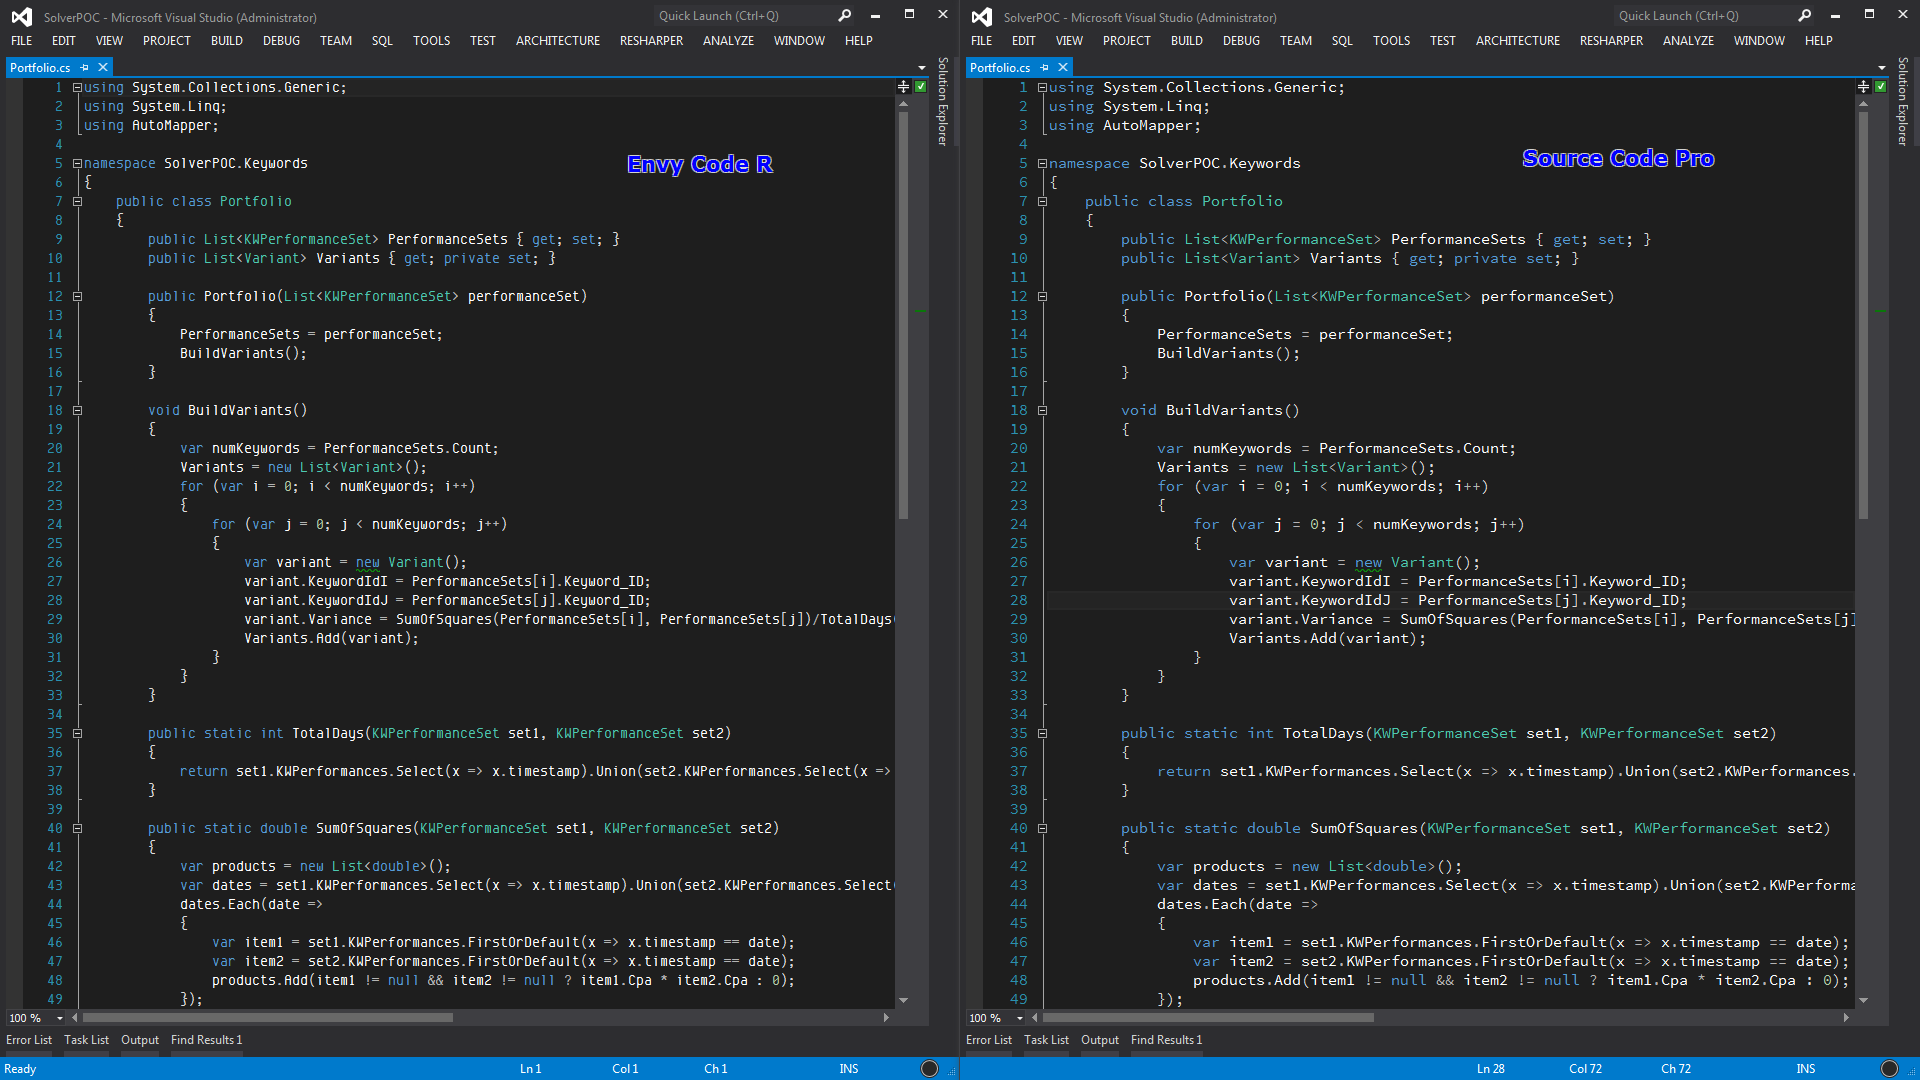 Coding Fonts: Envy Code R, Consolas, and Adobe's Source Code